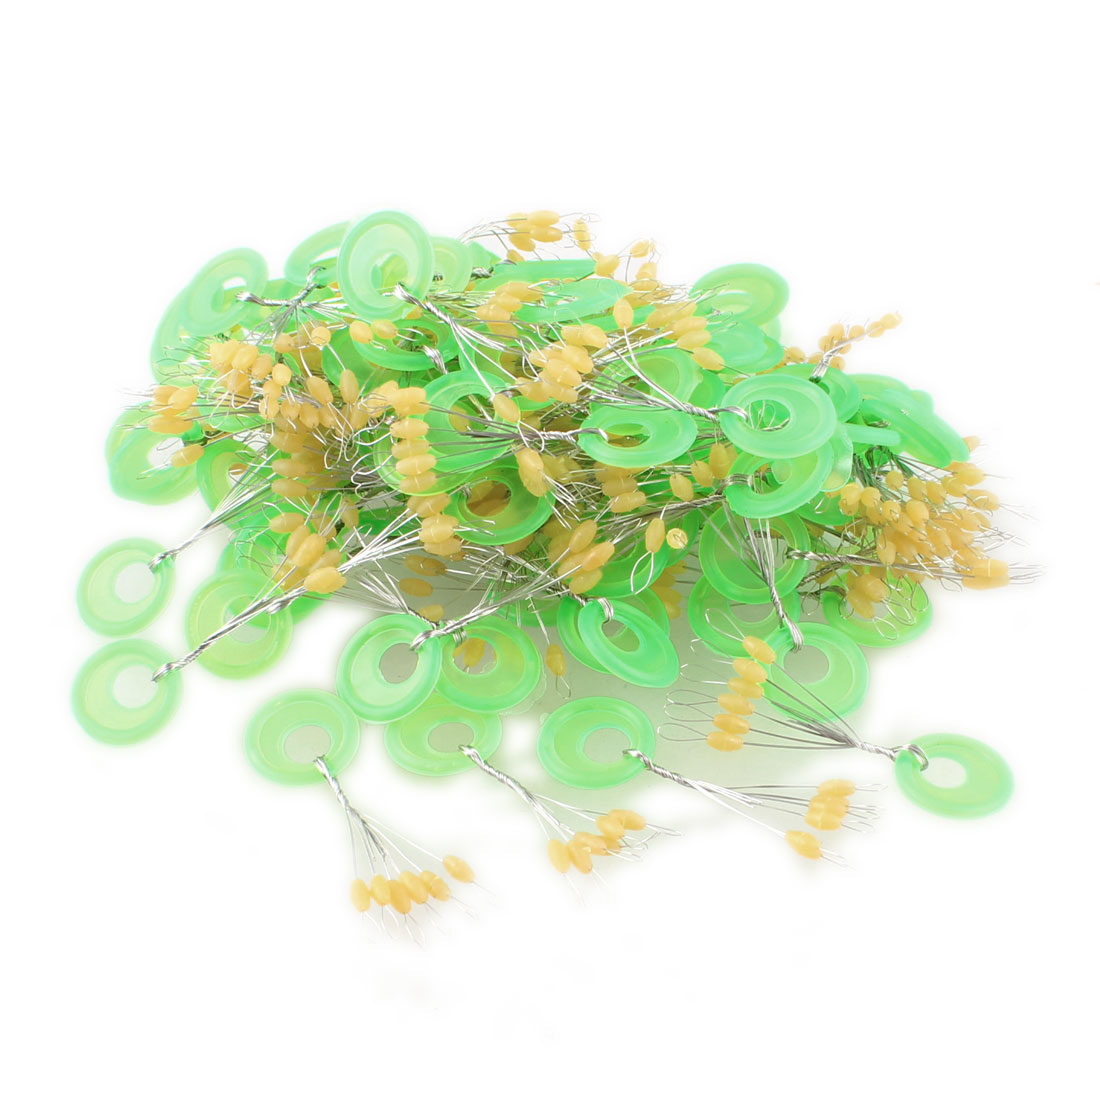 Unique Bargains 98 Pcs 6 in 1 Green Plastic Angling Tackle Fishing Bobbers Stoppers by